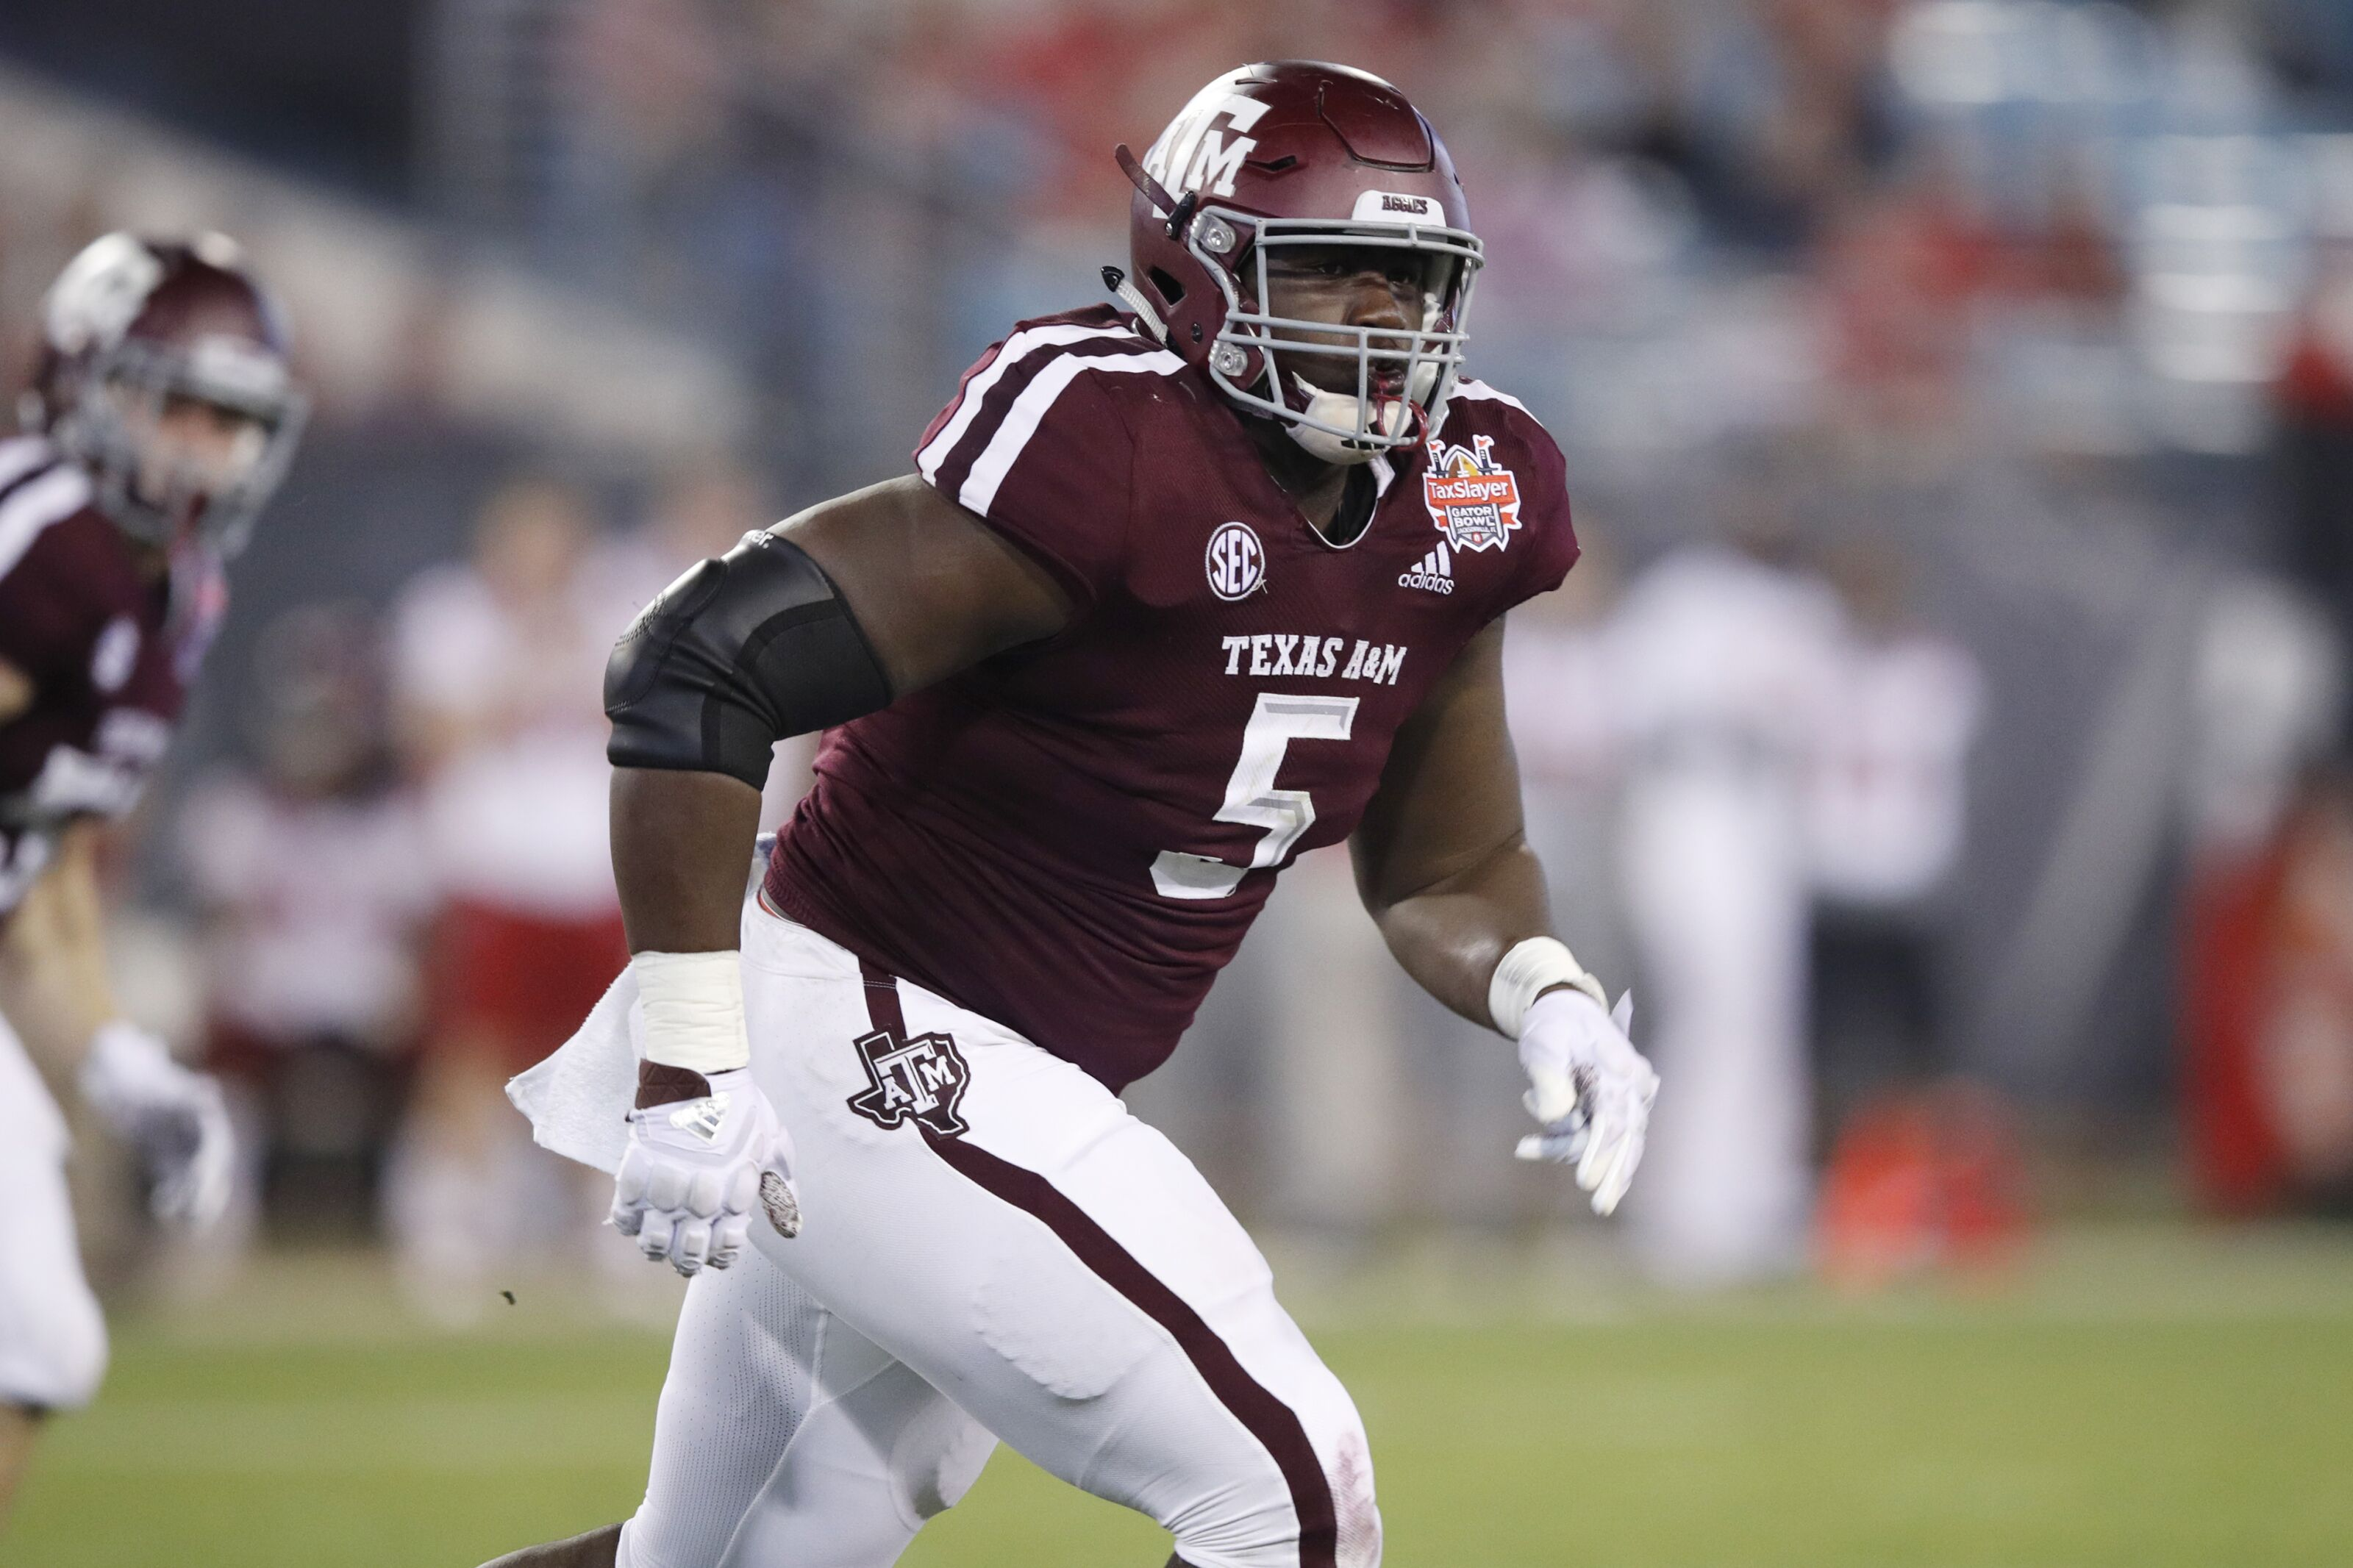 Texas A&M football 50 in 50: Will Bobby Brown III live up to the hype?